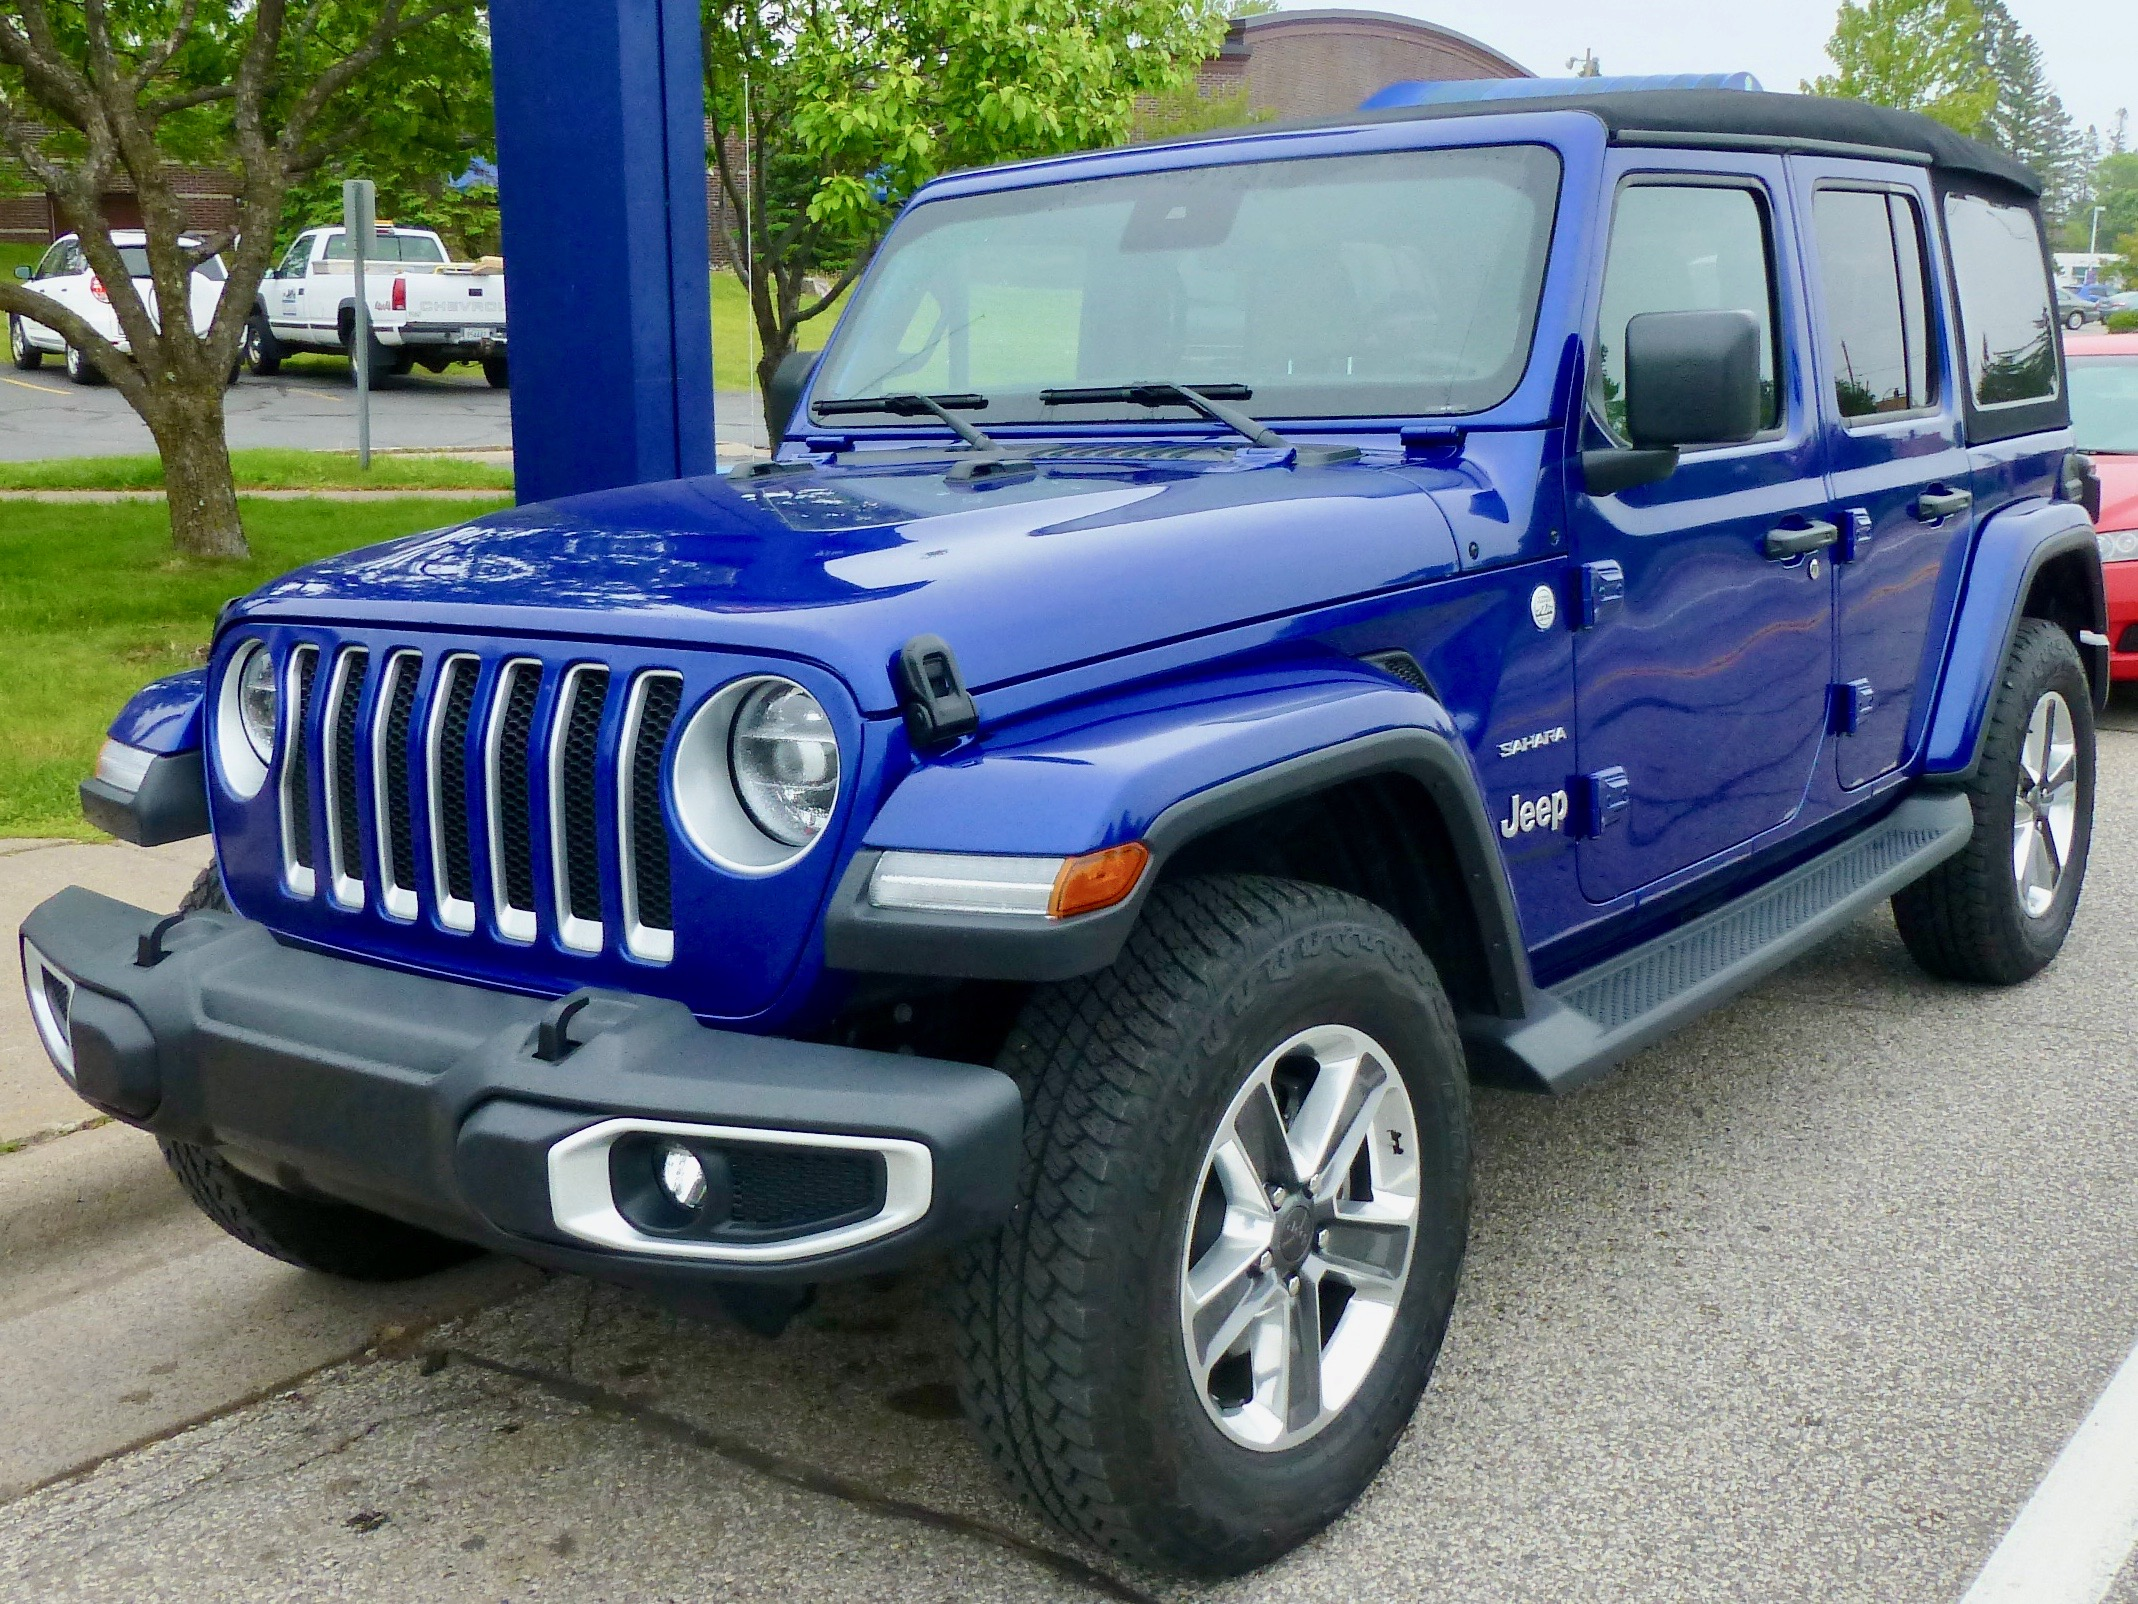 Wrangler might be at the upper limits of sophistication, risking its rugged reputation.